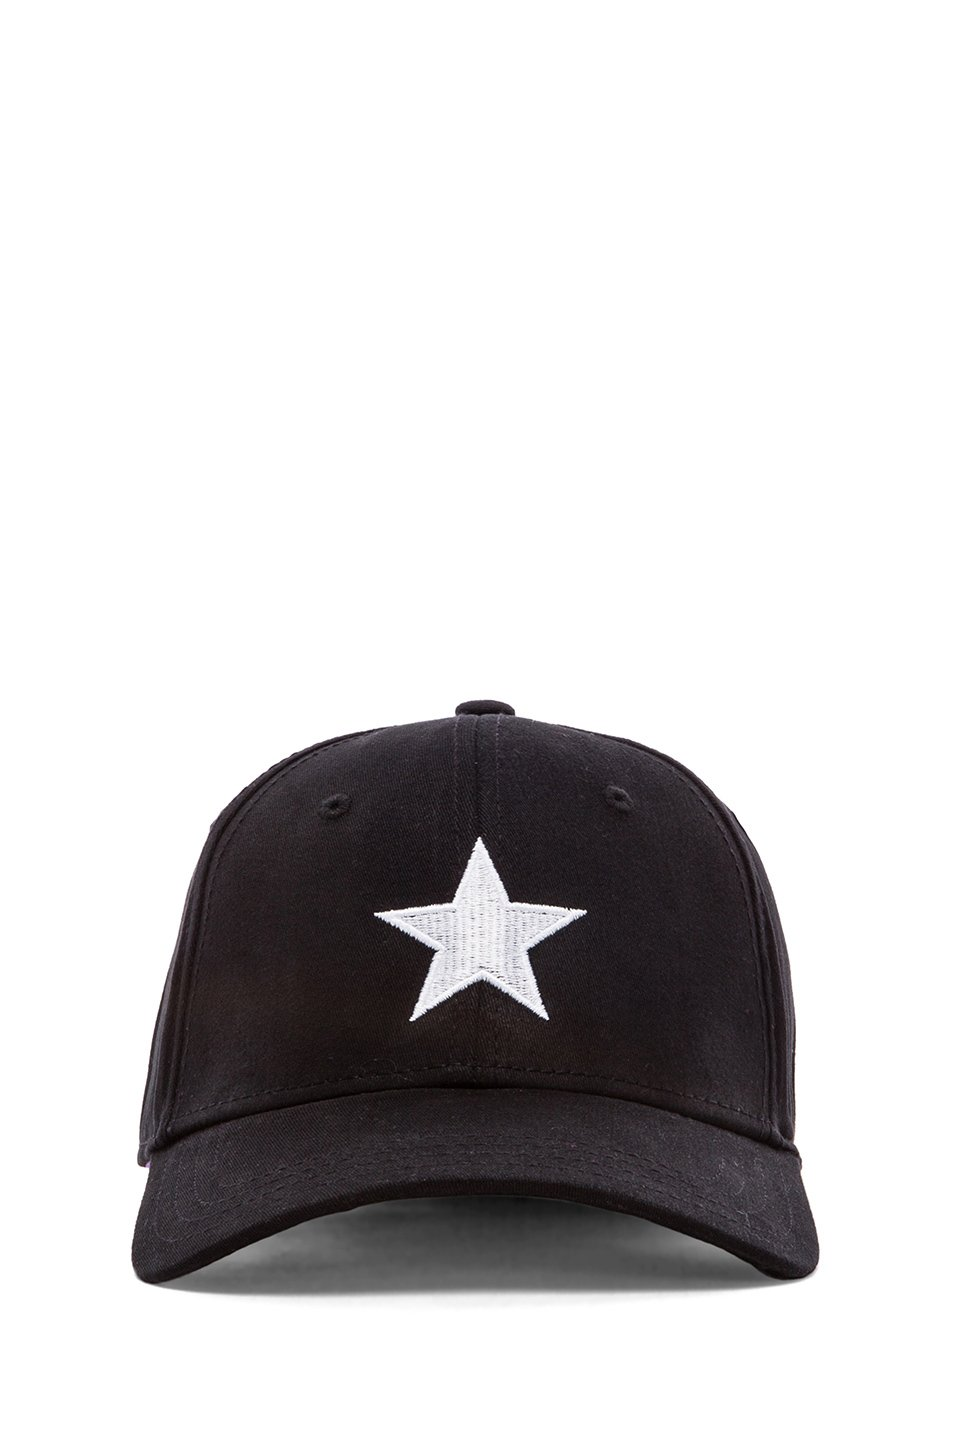 22389394d9a8d Lyst - Gents Co. Lone Star Cap in Black for Men